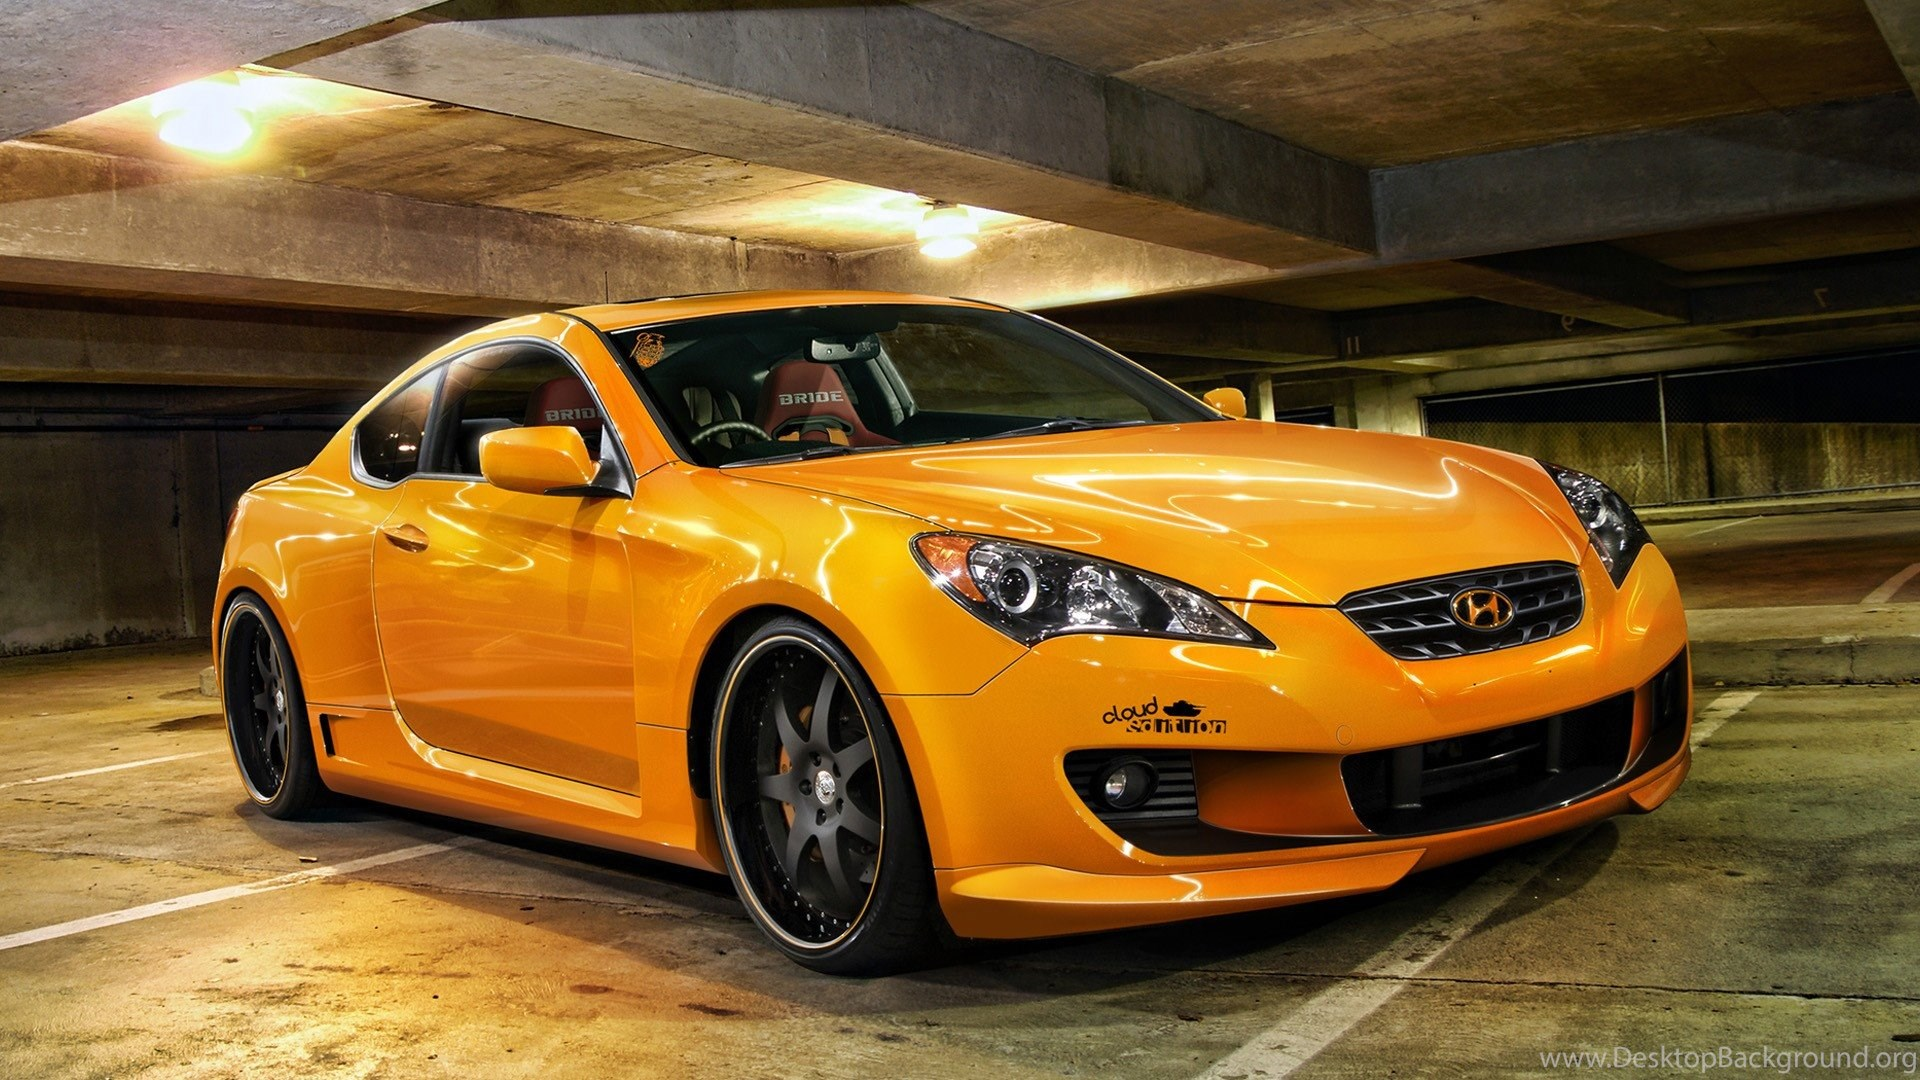 Cars Vehicles Hyundai Hyundai Genesis Orange Cars Wallpapers